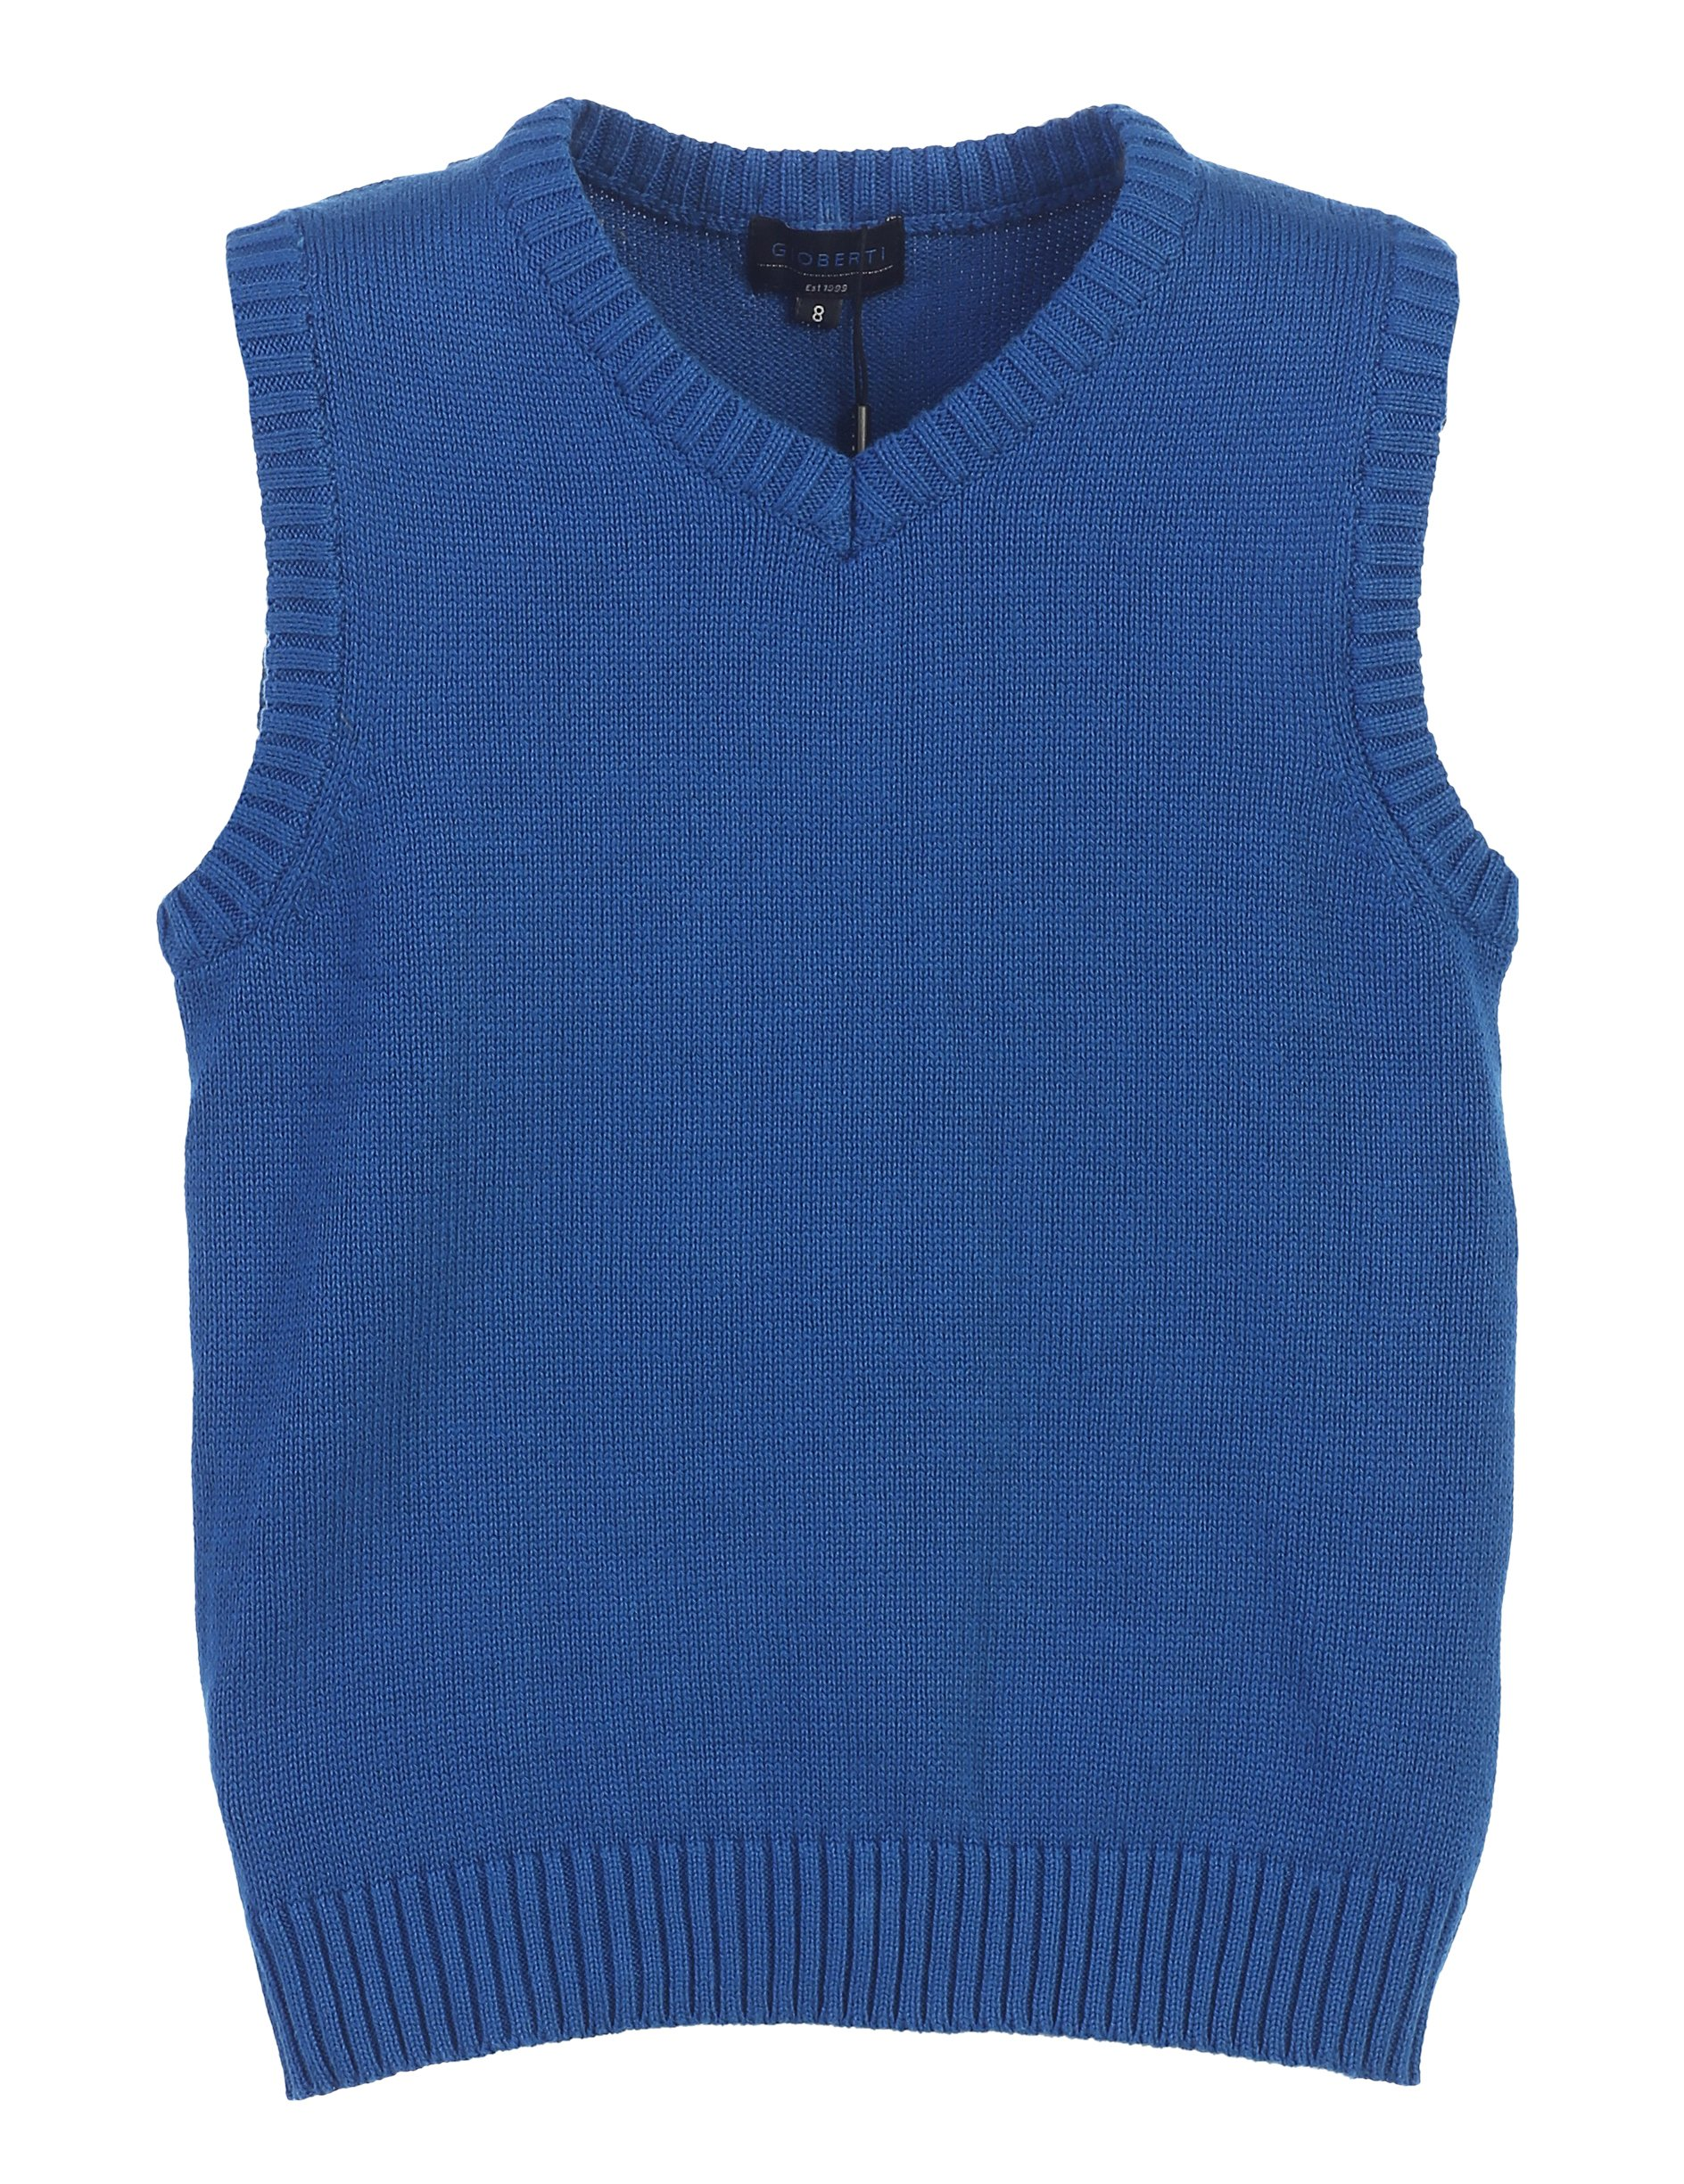 Gioberti Boy's V-Neck Knitted Pullover Sweater Vest, Royal Blue, Size 2T